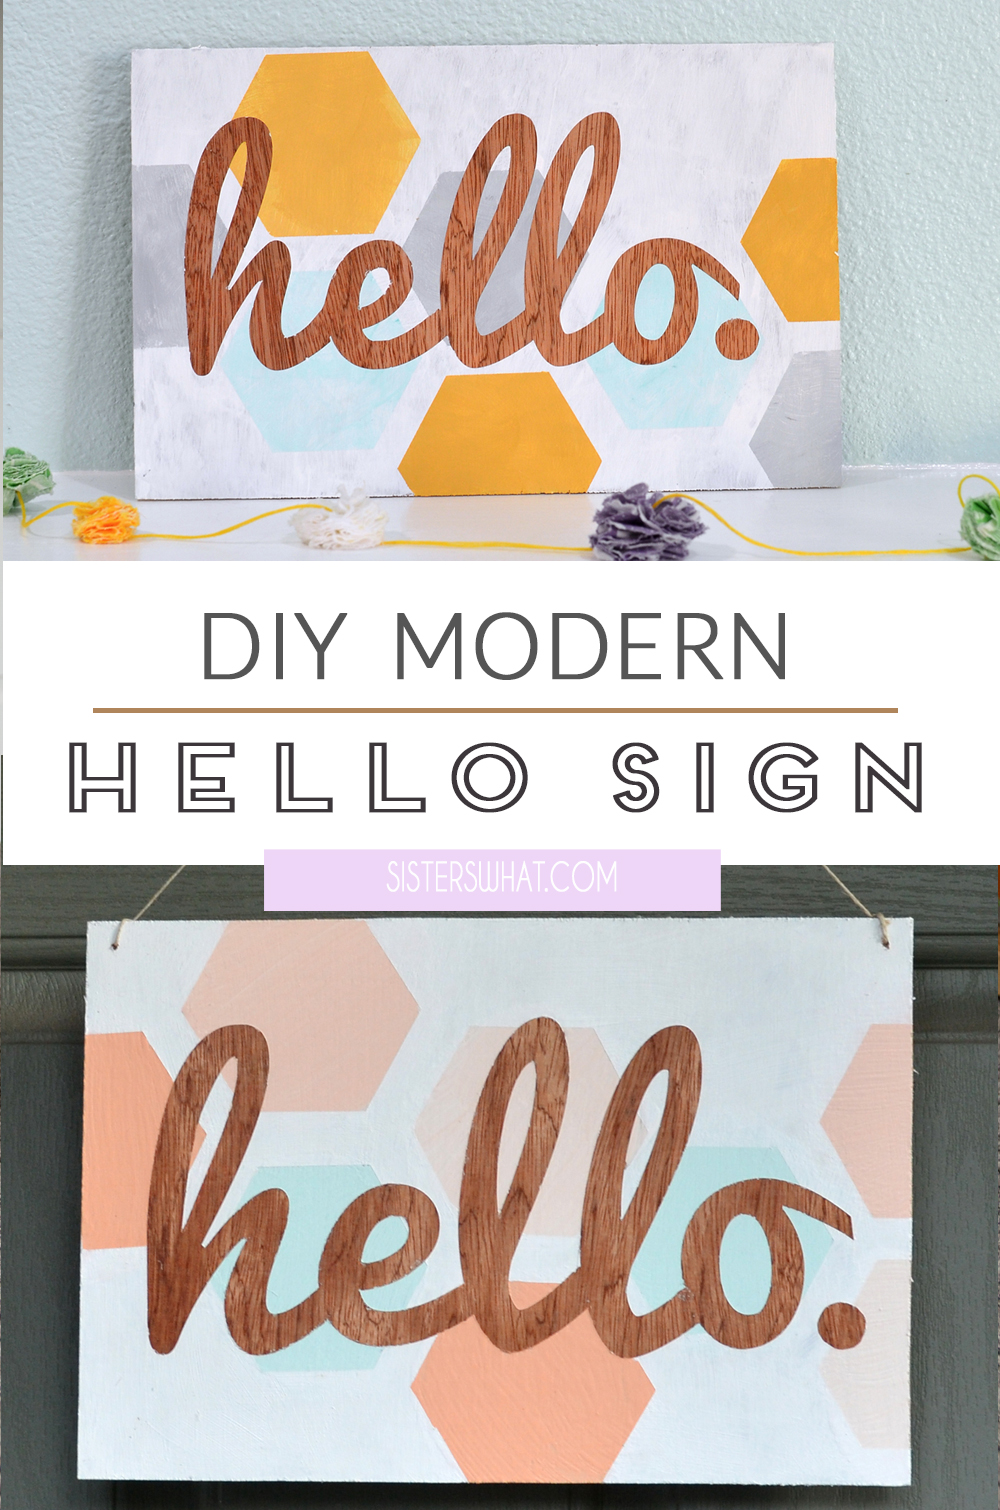 DIY Hello sign wood